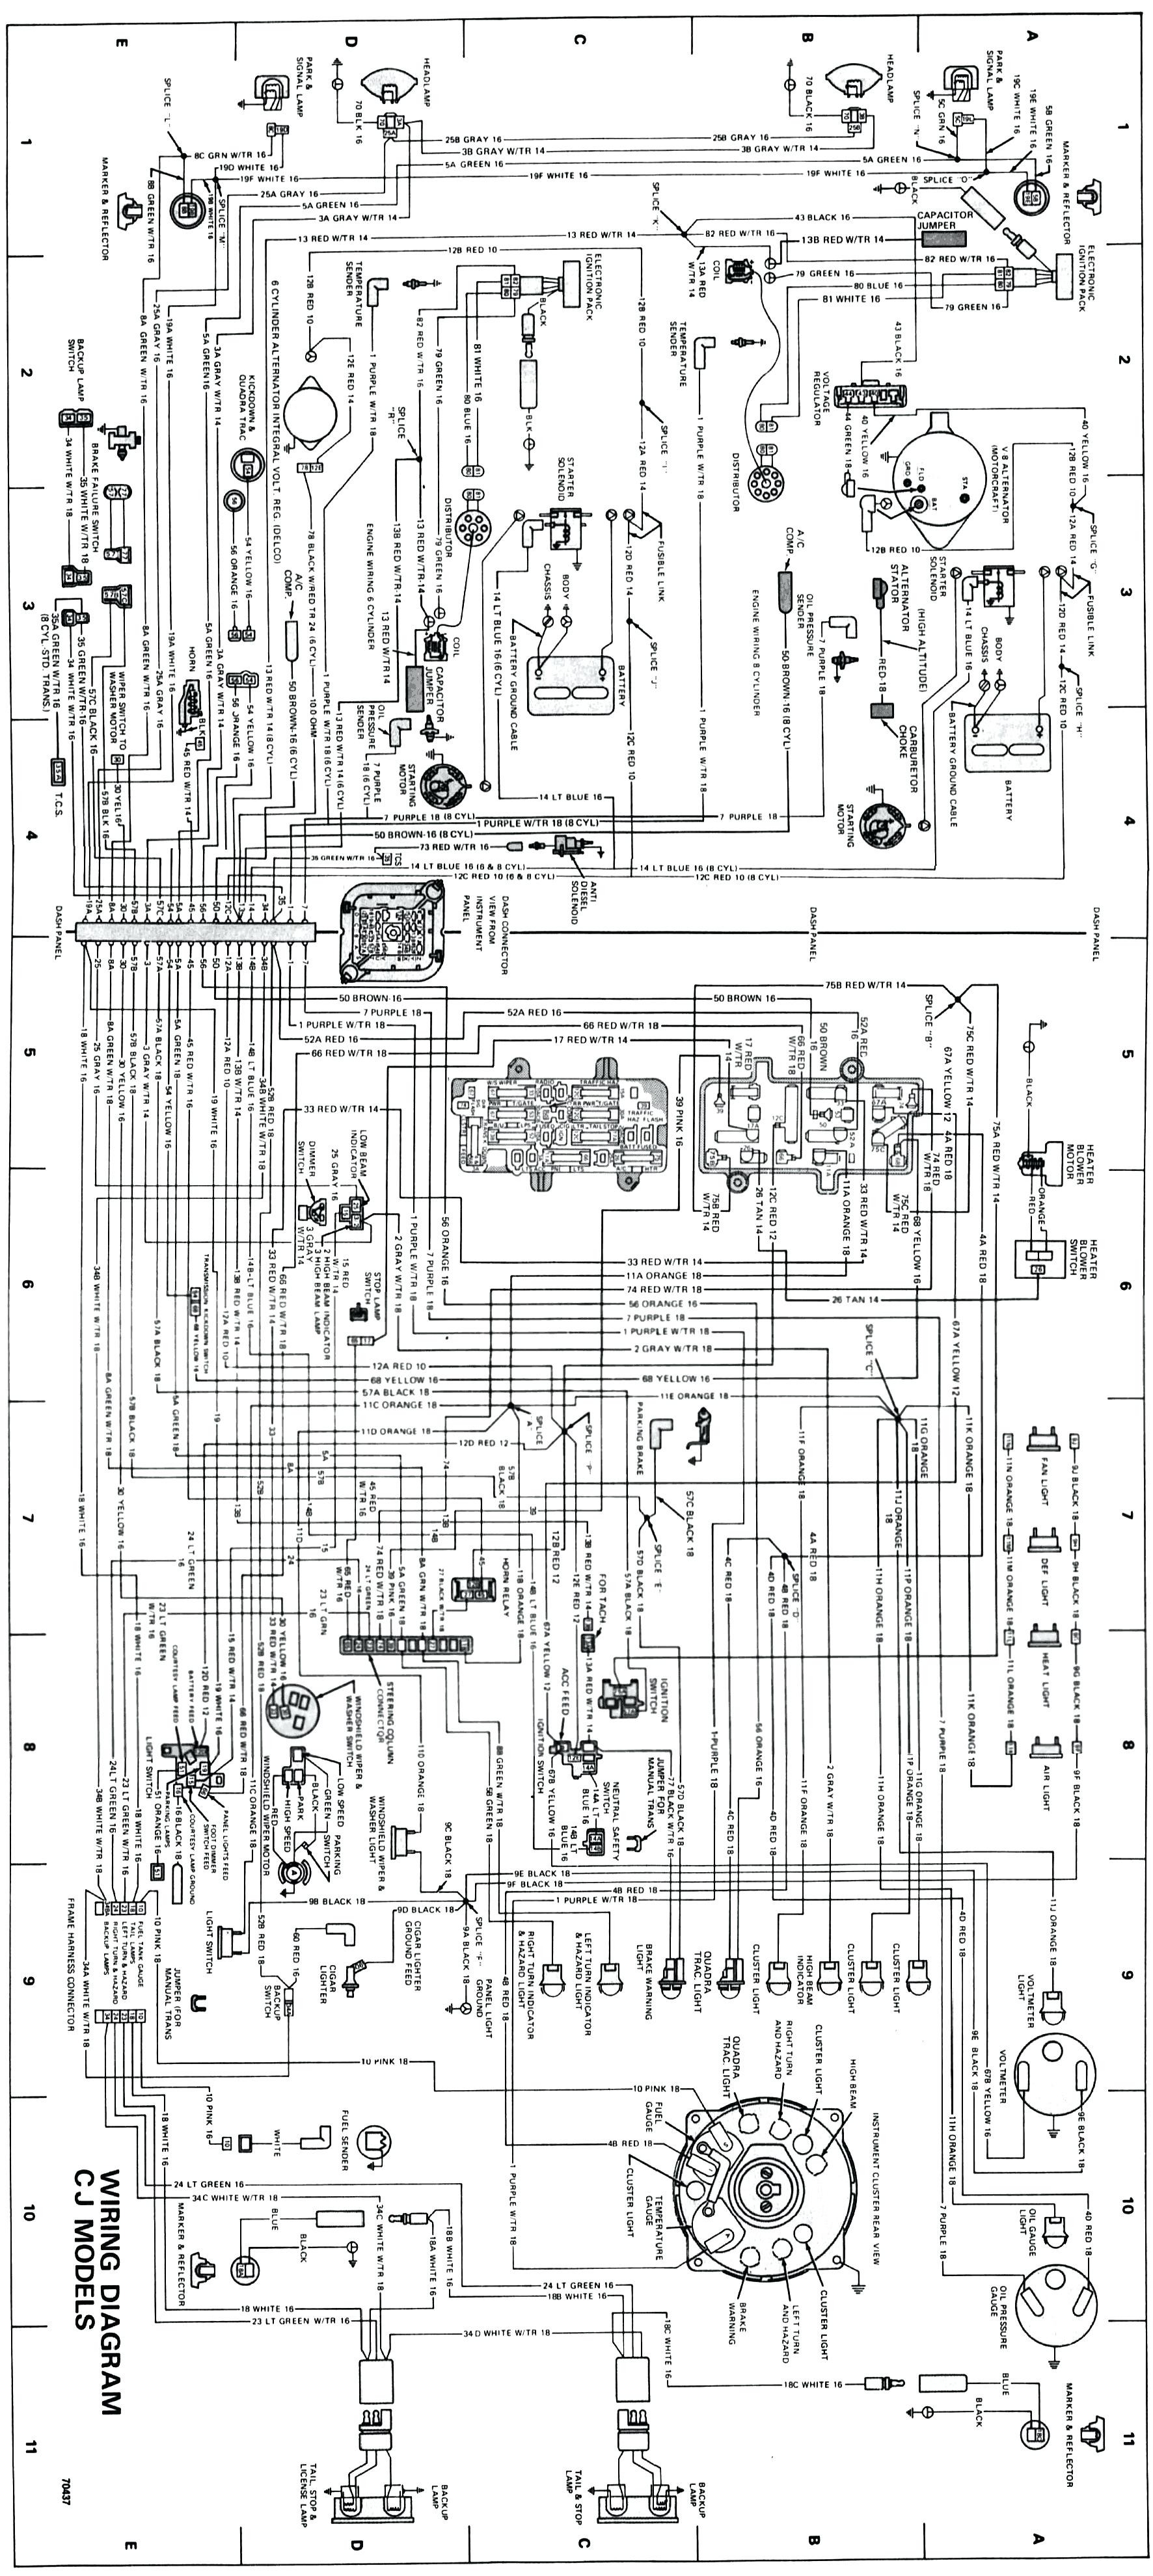 cj7 wiper switch wiring diagram basic wiring diagram u2022 rh rnetcomputer co